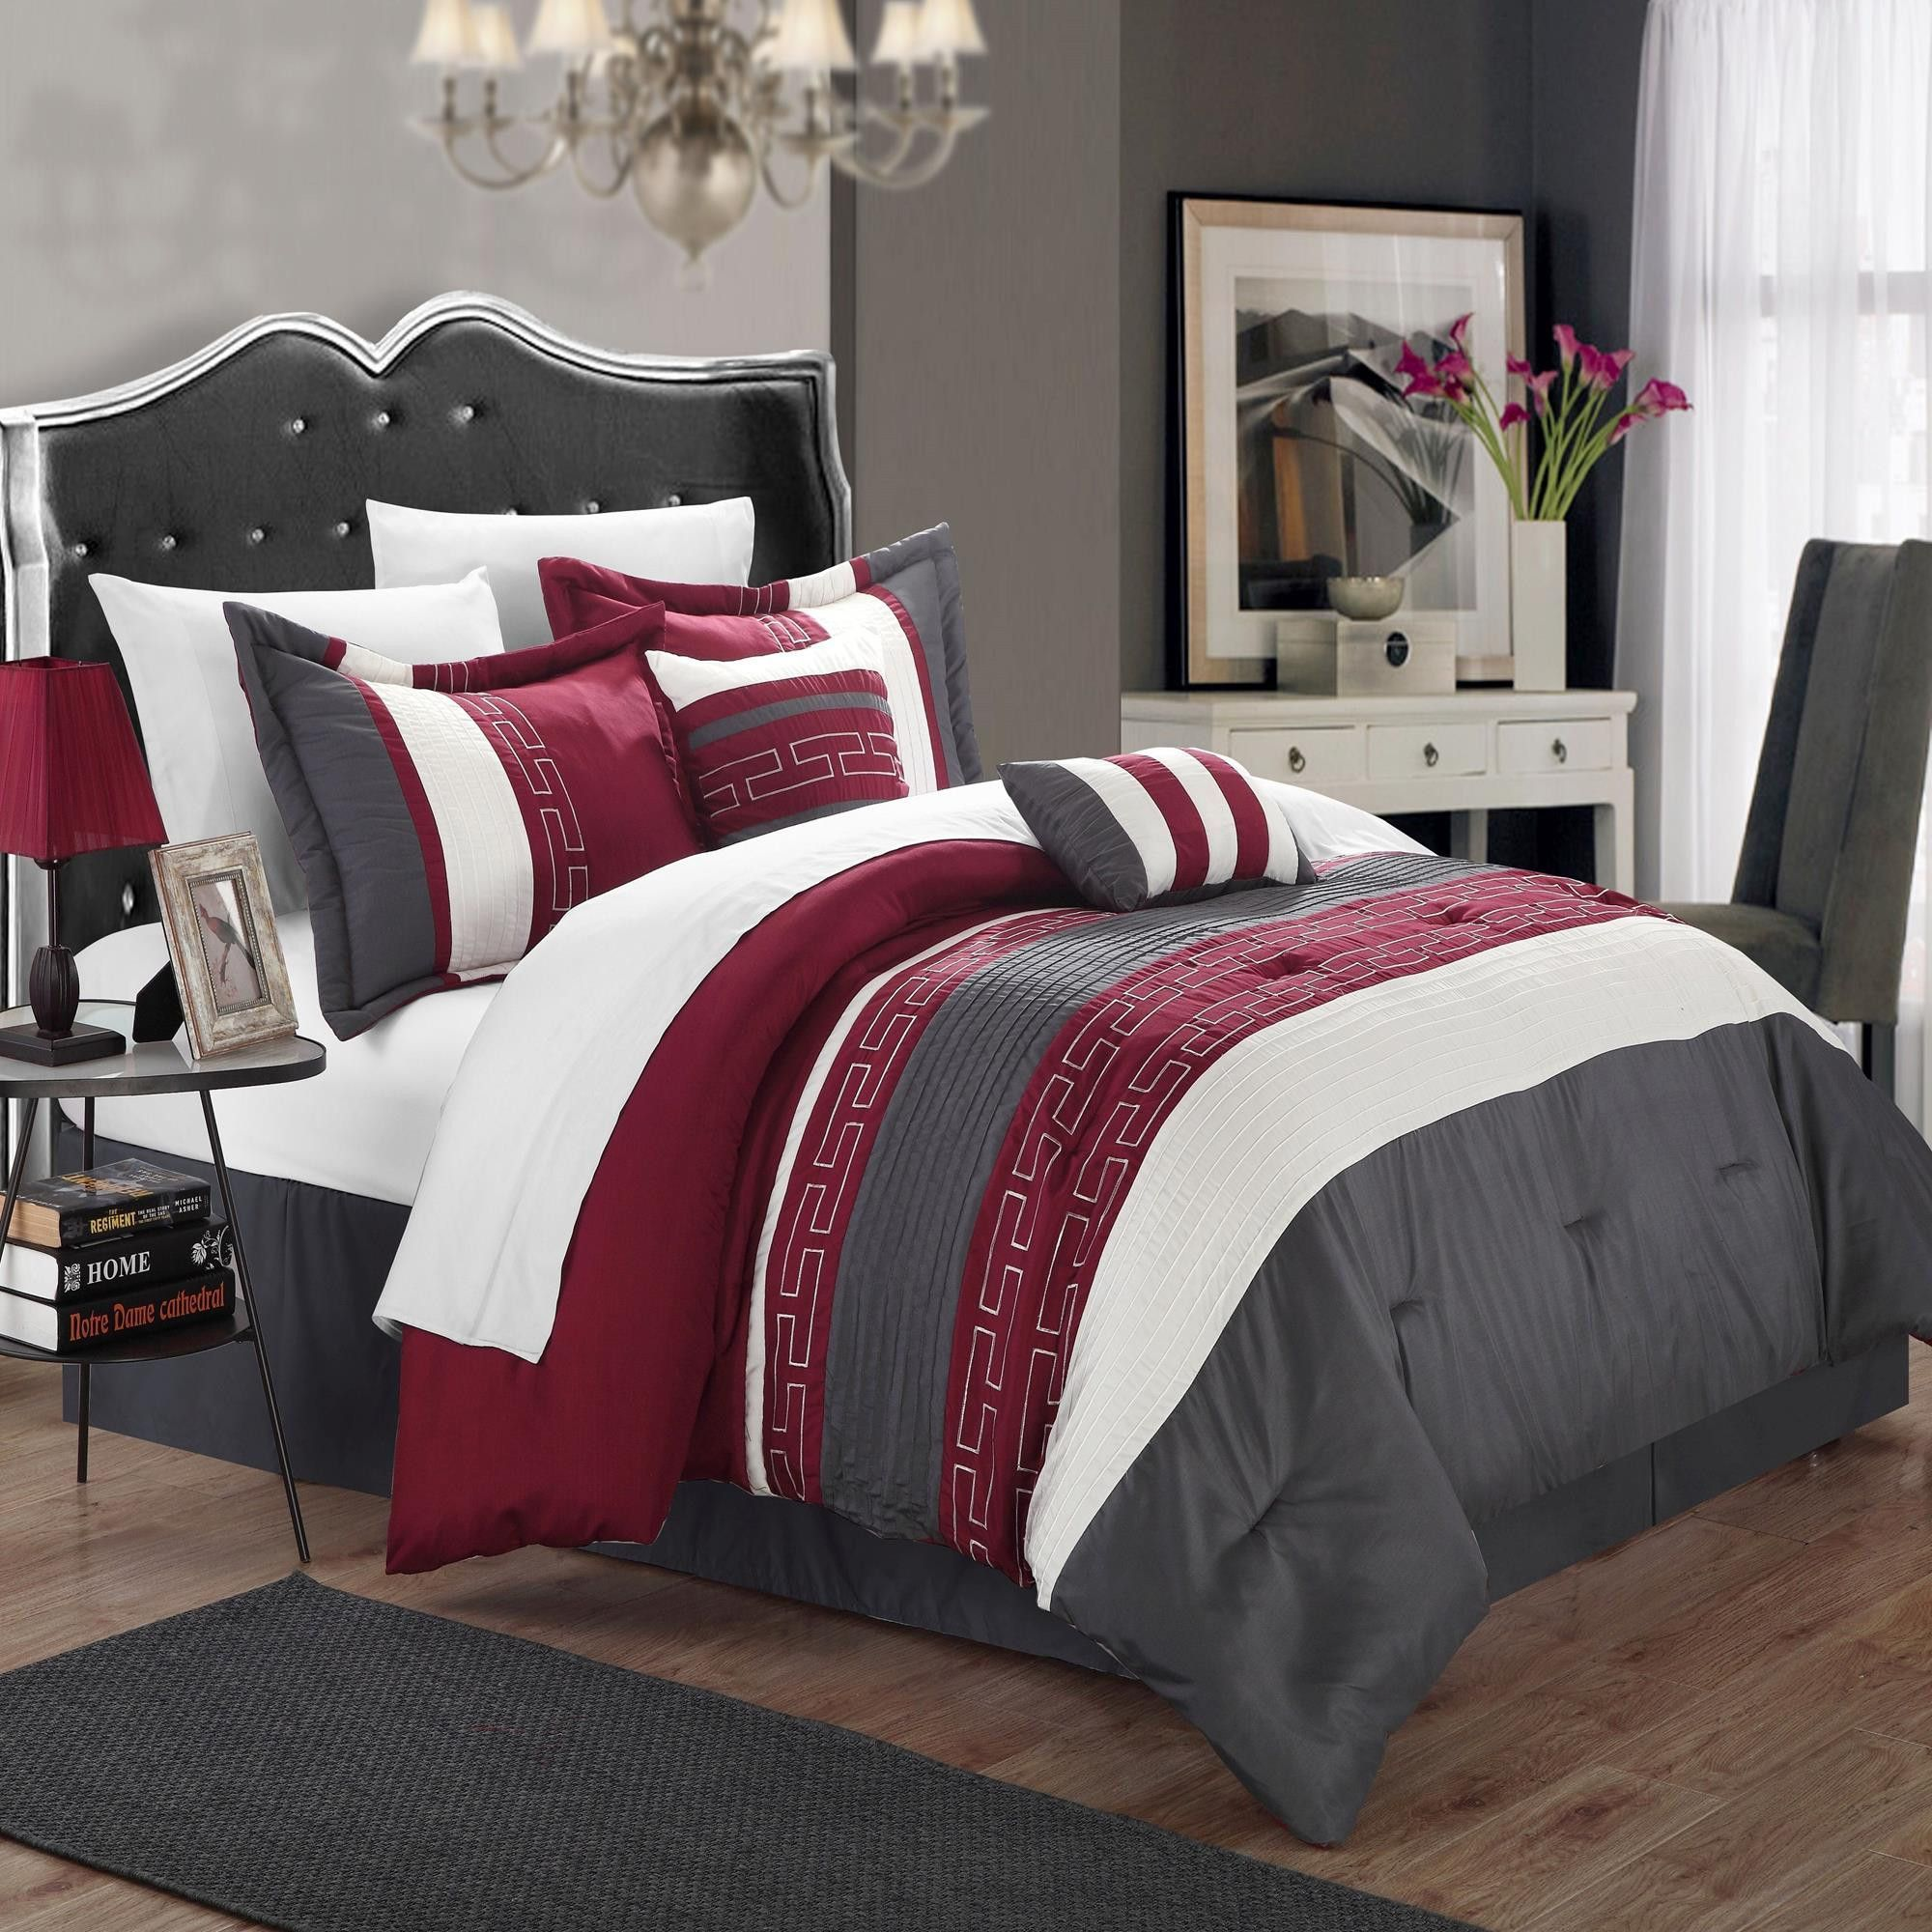 carlton burgundy grey u0026 white 10 piece embroidery comforter bed in a bag set